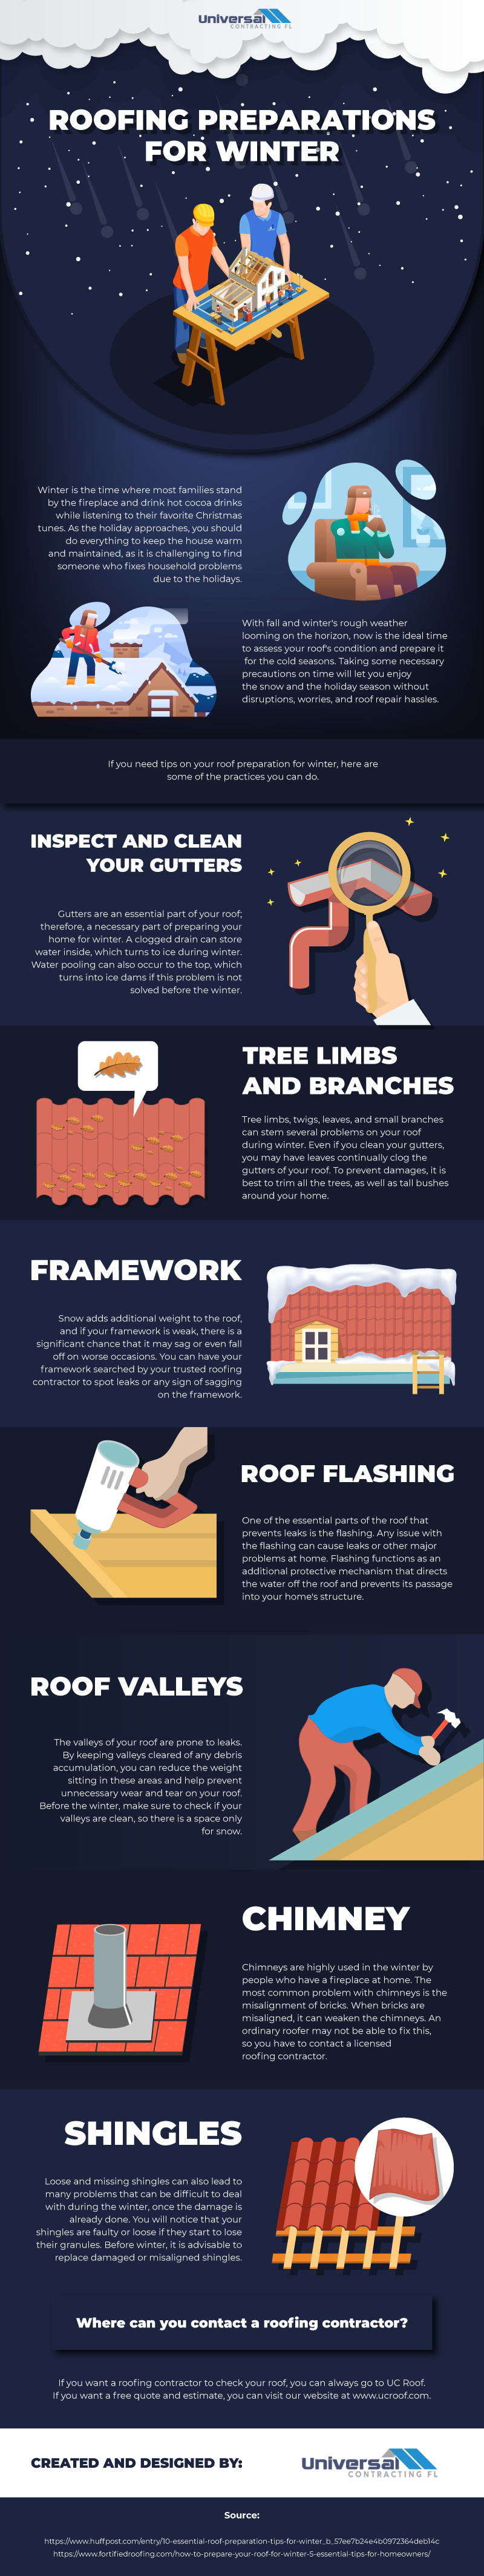 Roofing Preparations For Winter